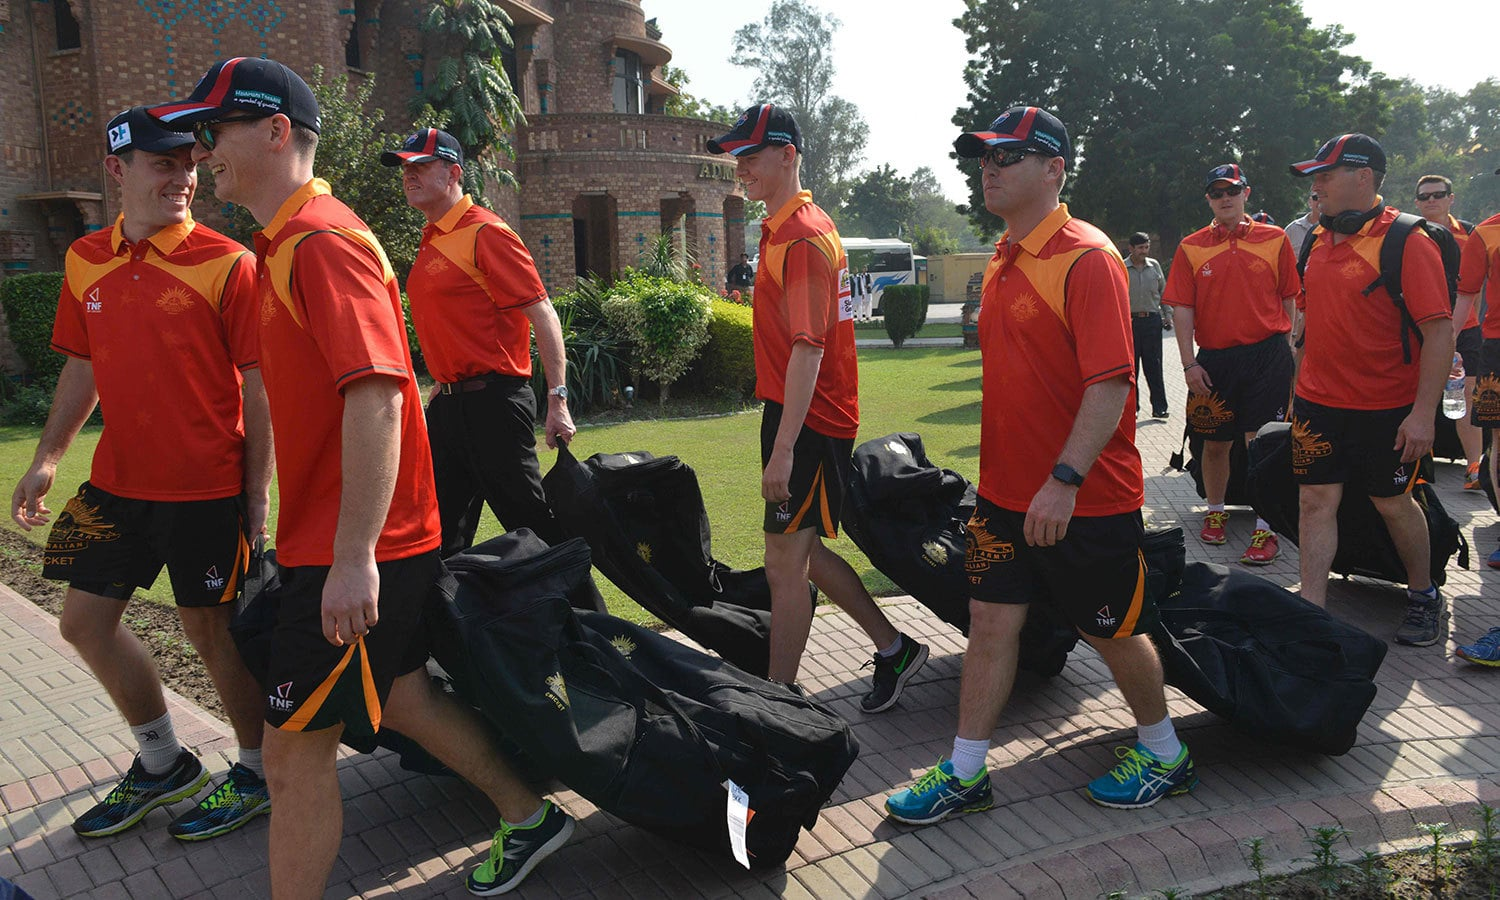 Members of the Australian army cricket team arrive for practice at the National Cricket Academy ahead of the First International PACES Competition 2016. ─AFP